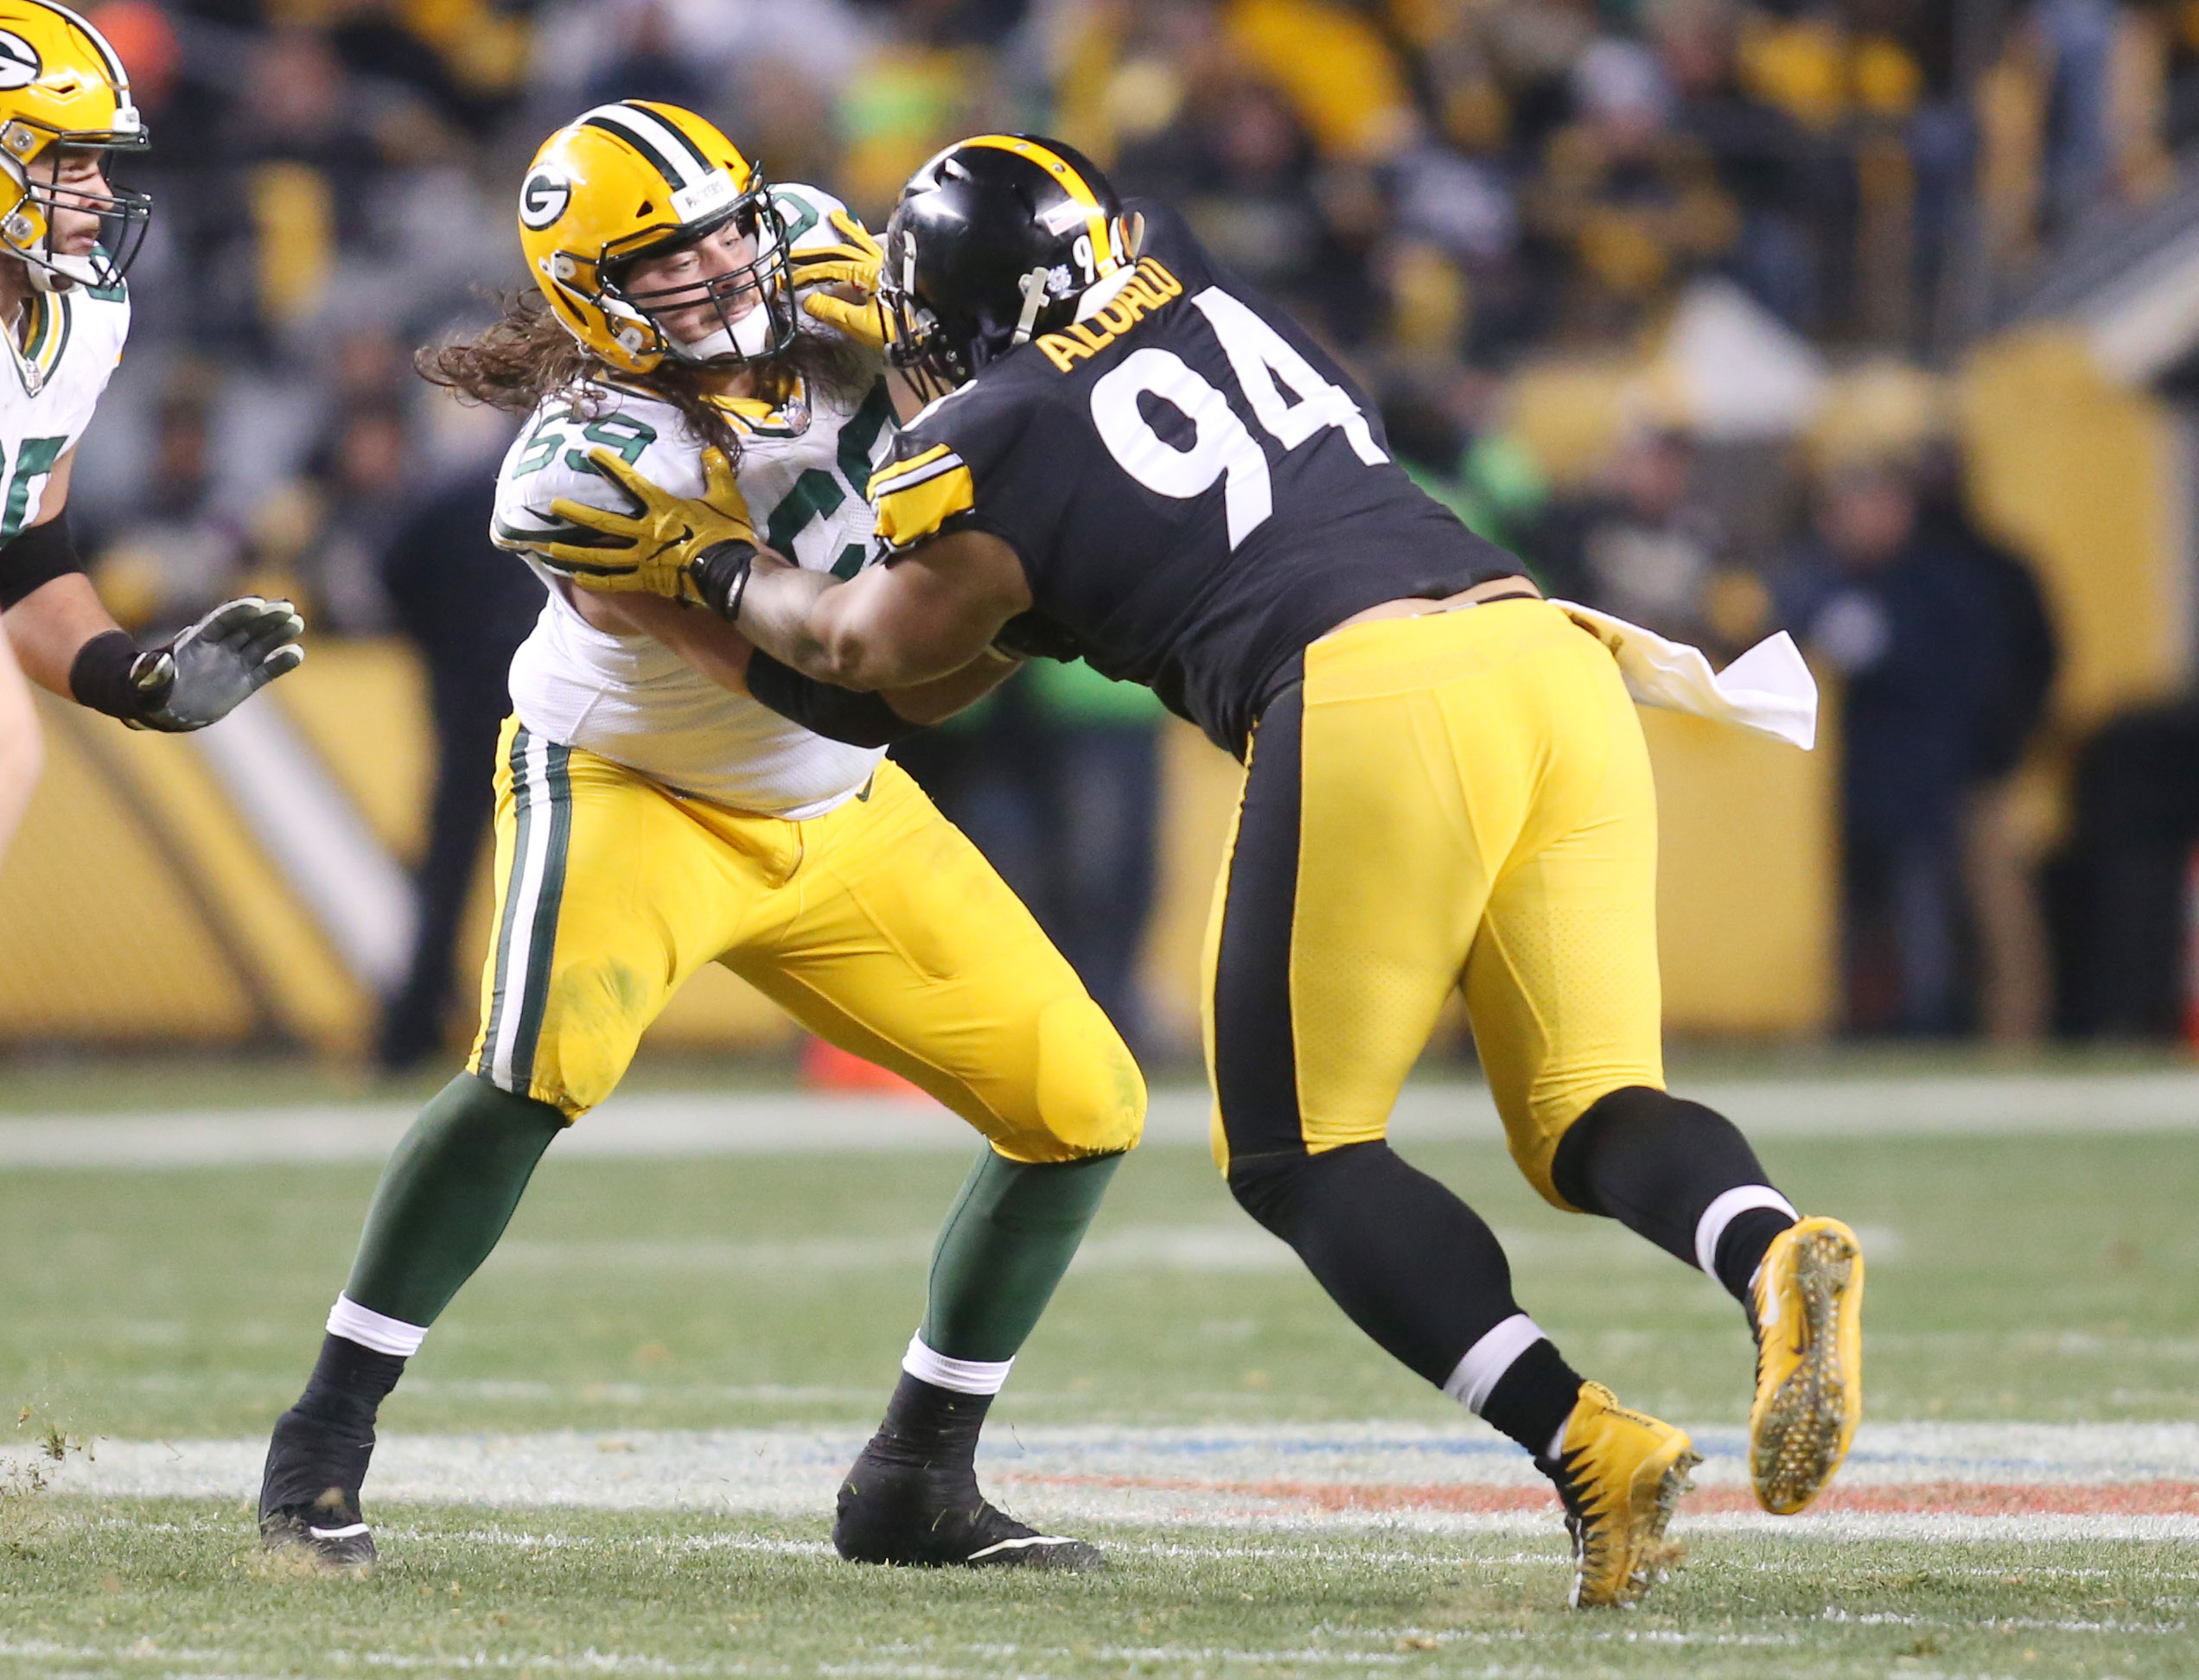 NFL: Green Bay Packers at Pittsburgh Steelers